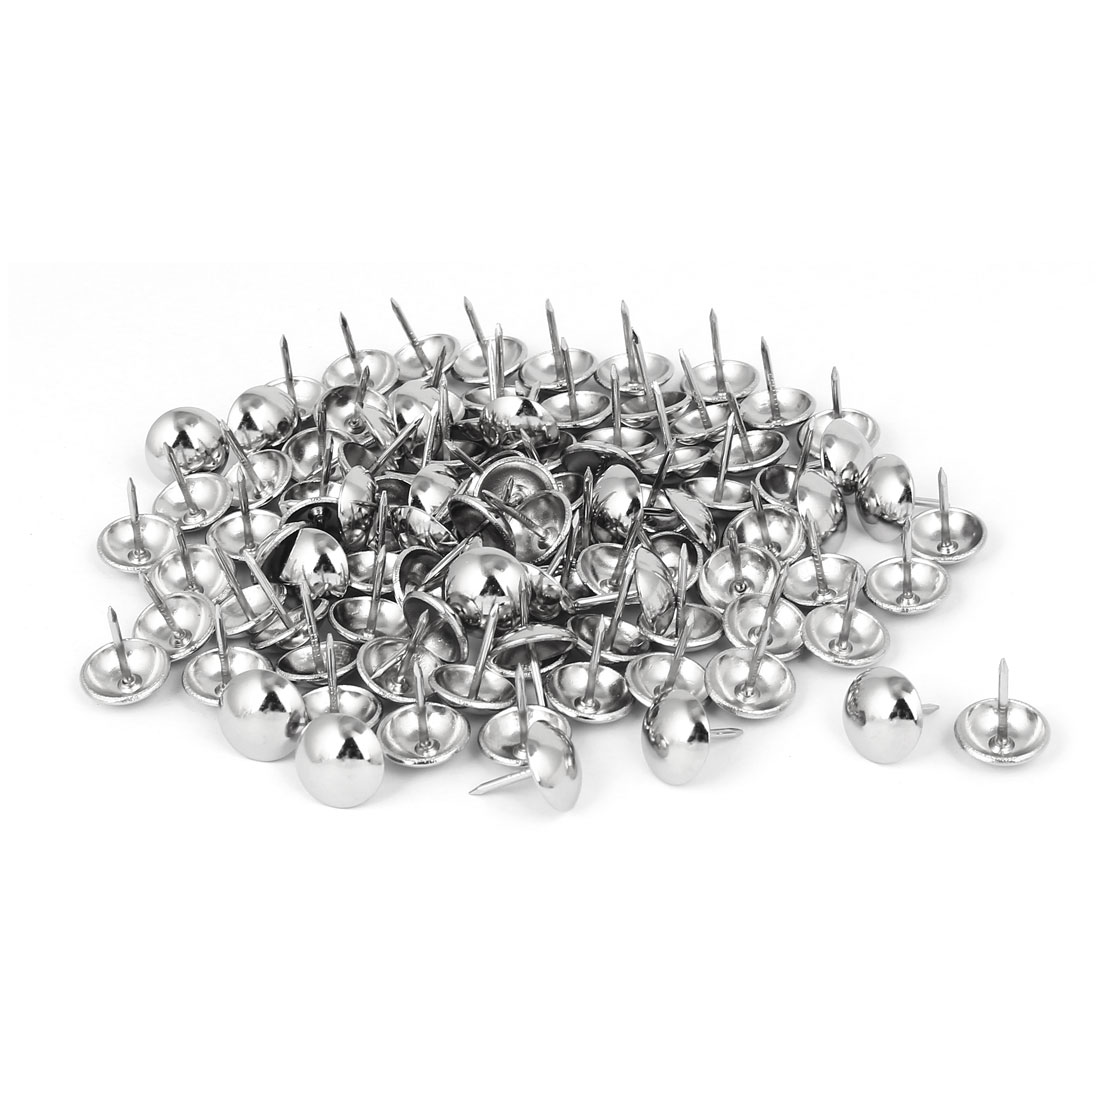 Home Metal Round Domed Head Upholstery Tack Nail Silver Tone 14mm Dia 120pcs